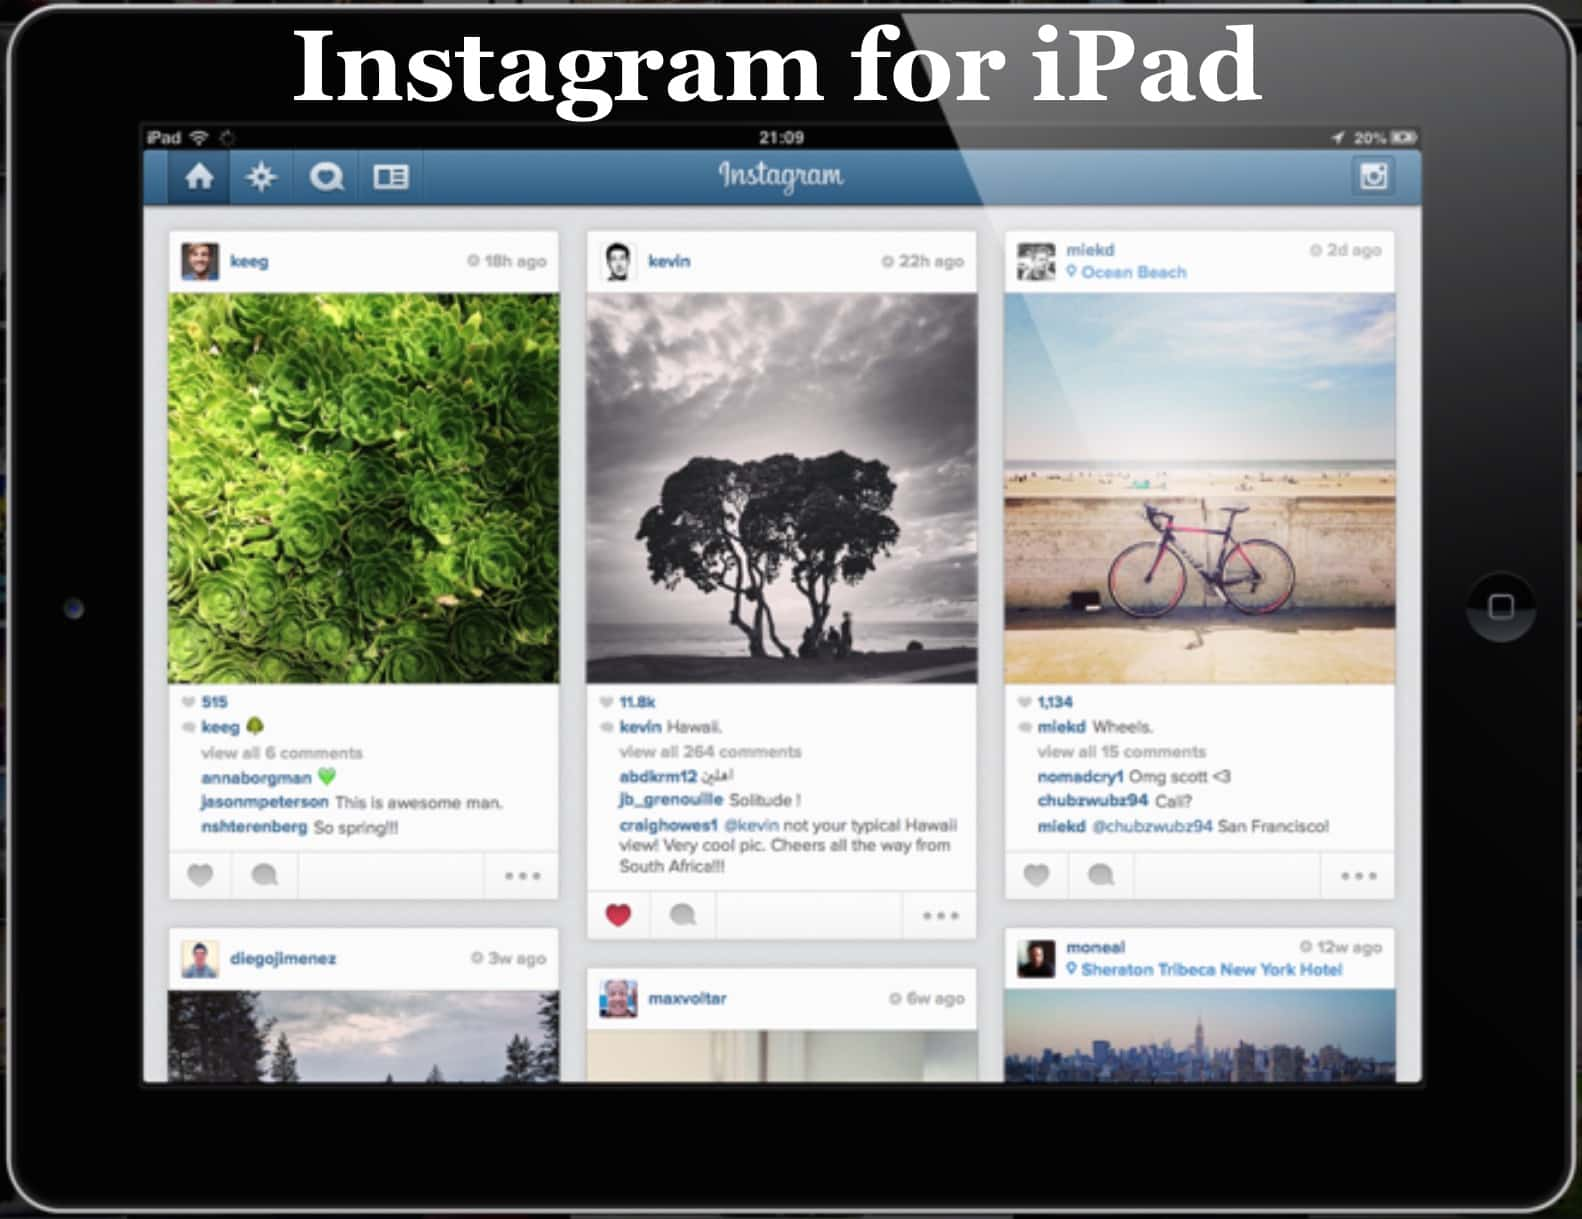 3 Ways To Get Instagram App For iPad | Appamatix